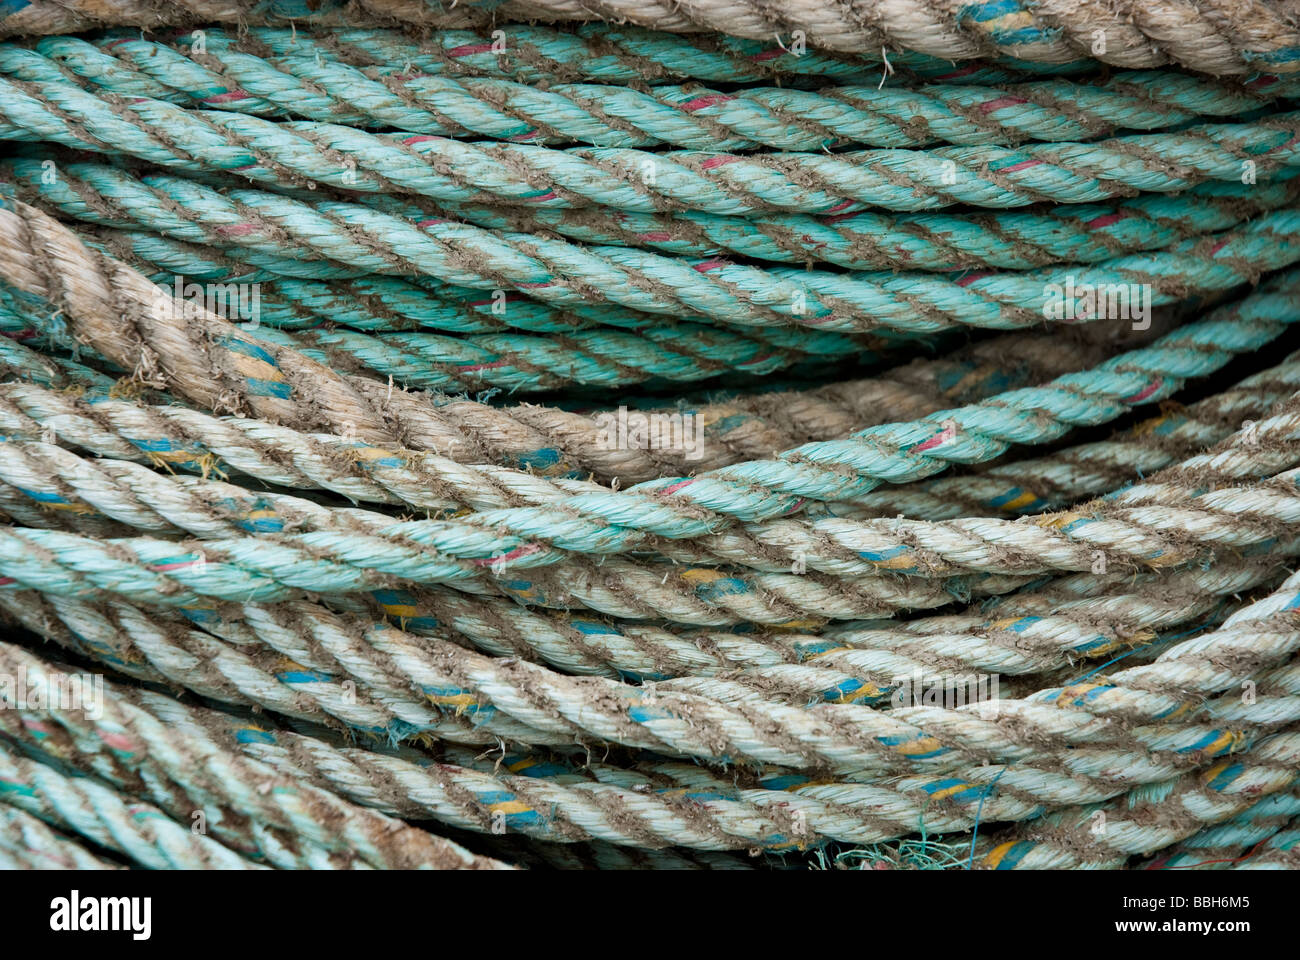 coil of old rope - Stock Image